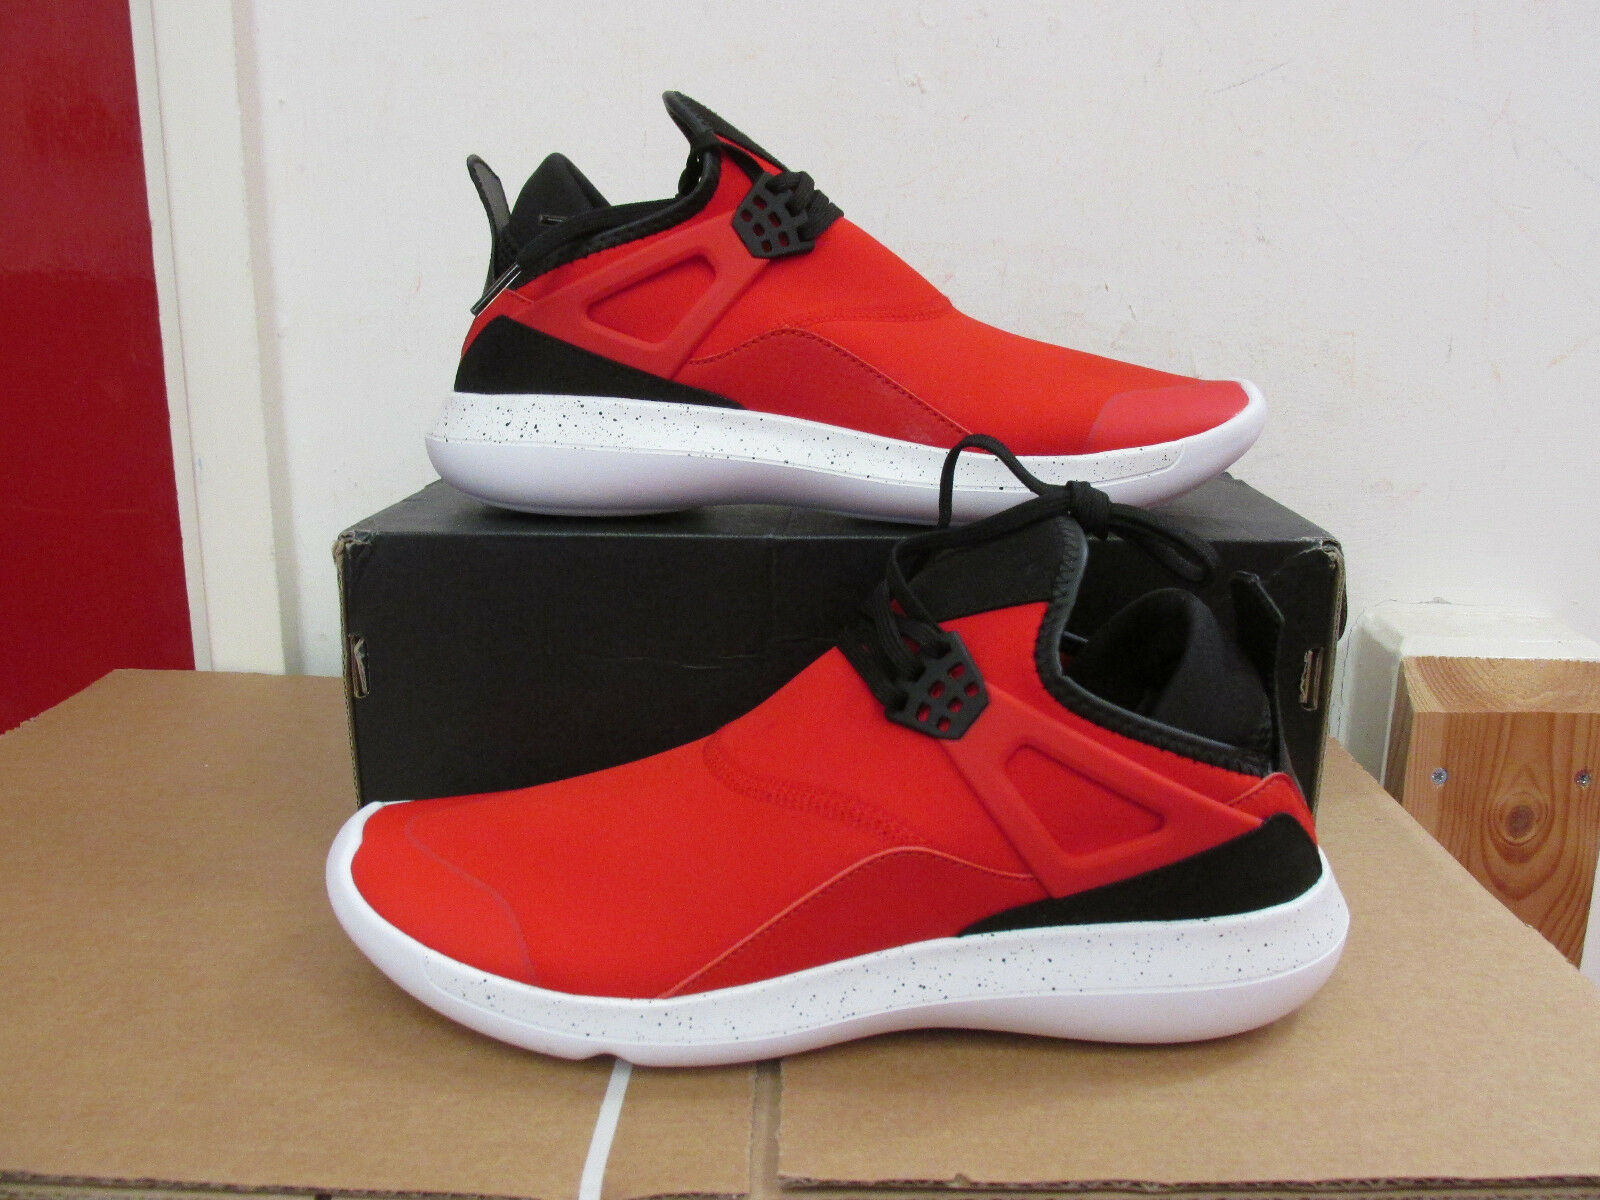 Nike Air Jordan Fly 89 Mens Trainers 940267 601 Sneakers Shoes CLEARANCE